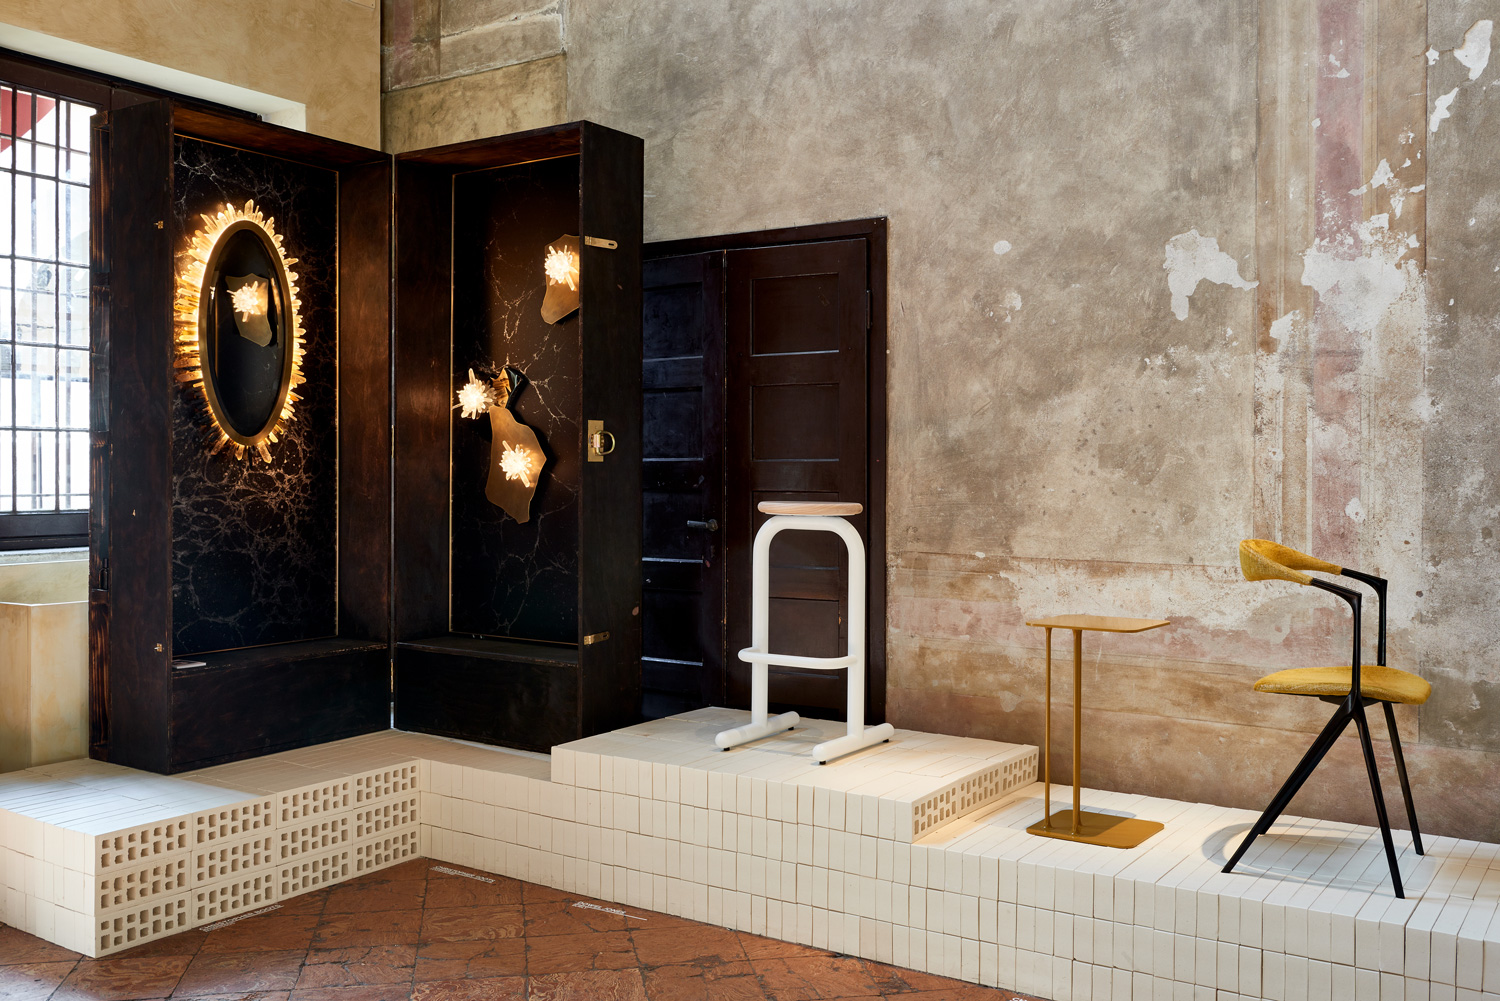 Local Design Installation, Australian Designers Milan | Yellowtrace